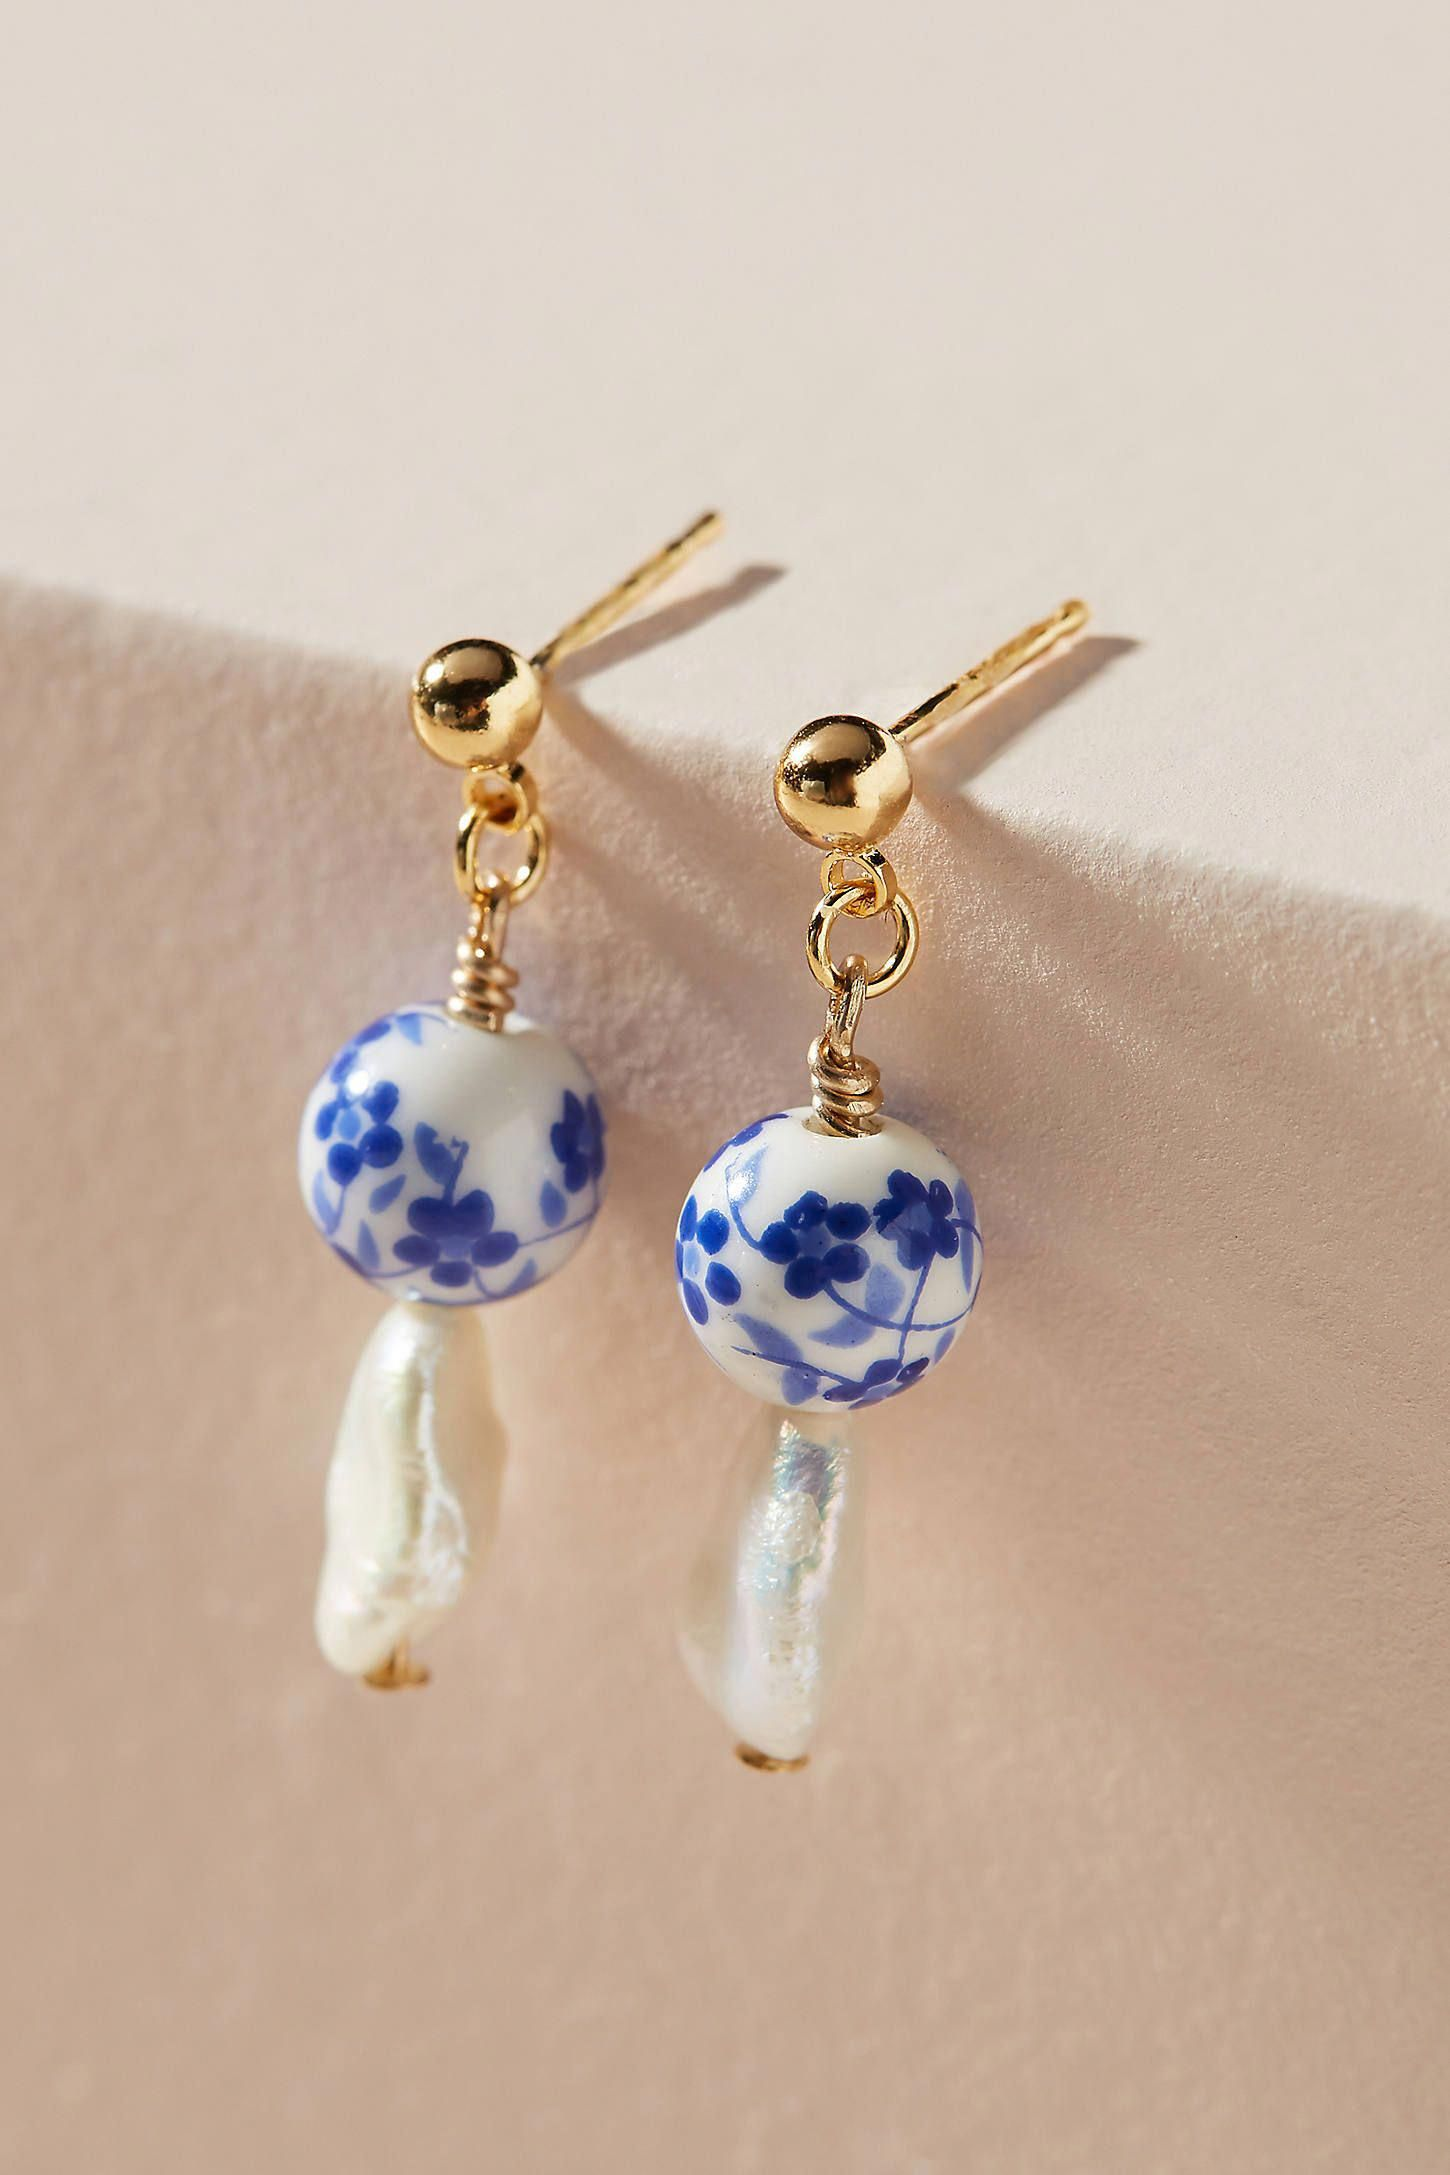 Cloverpost James Pearl Drop Earrings By In Blue Size All Jewelry At Anthropologie Keepitclassyjewelry In 2020 Pearl Drop Earrings Drop Earrings Classy Jewelry